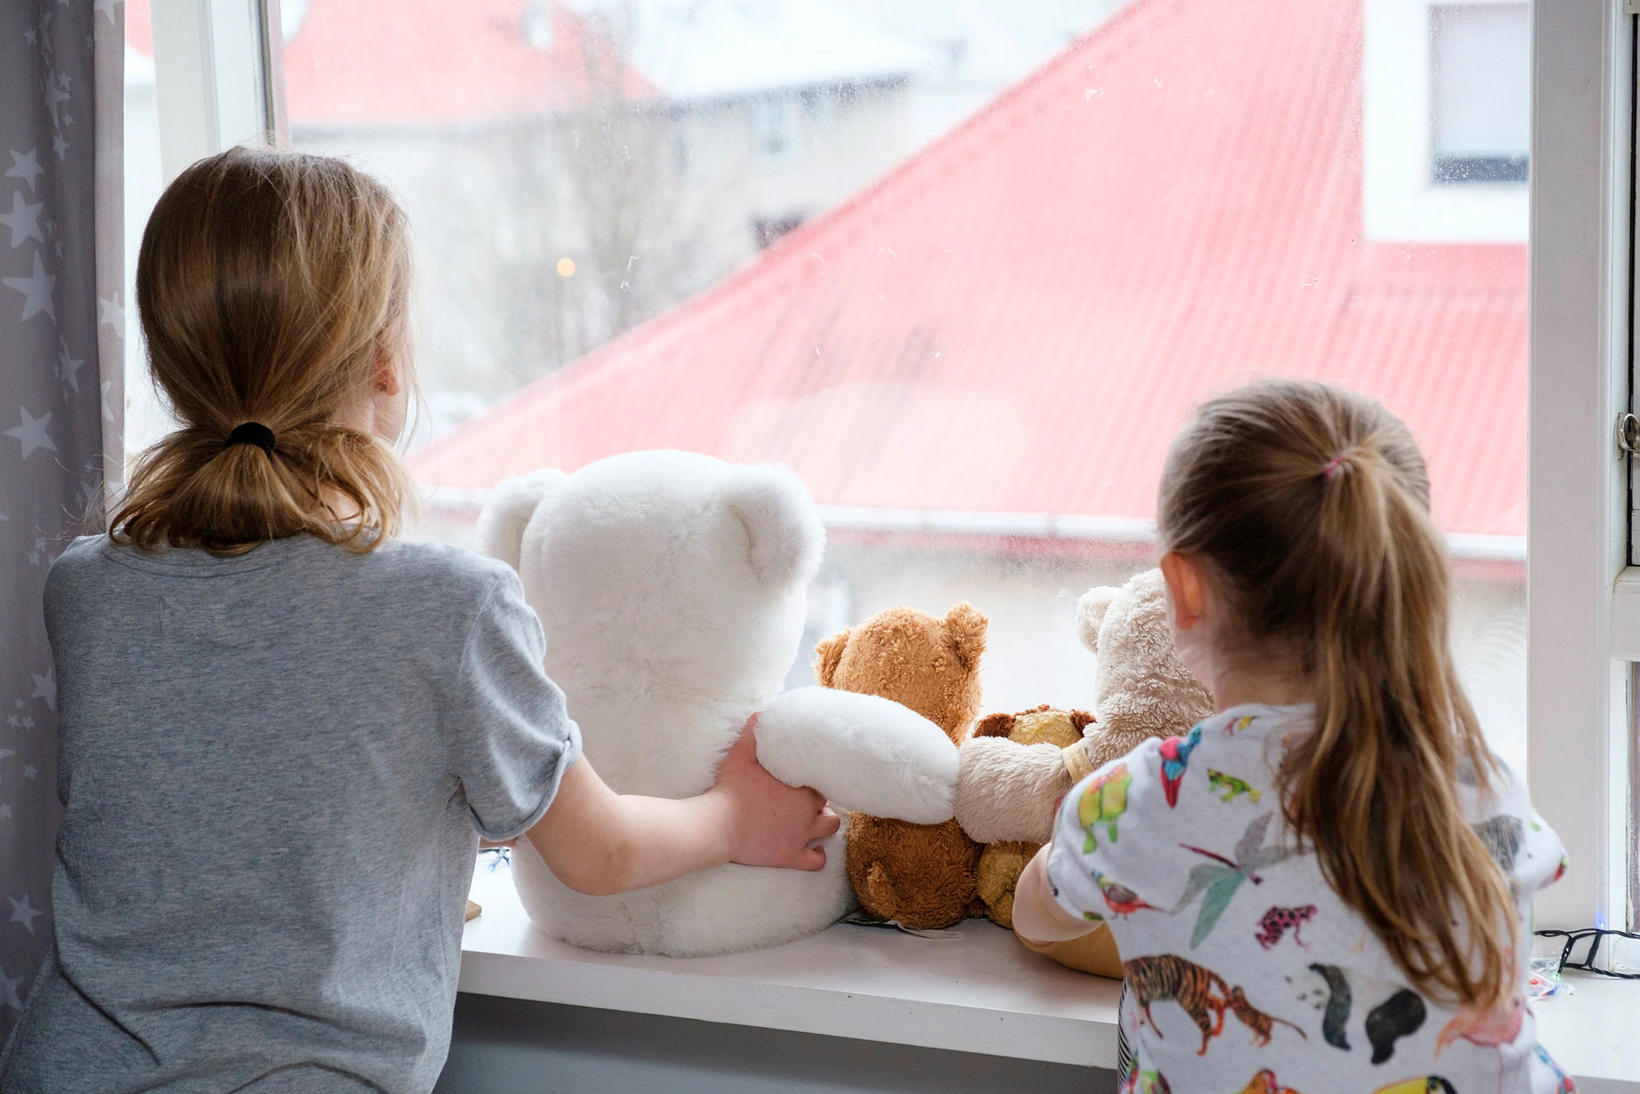 Teddy bear scavenger hunt for kids during the pandemic